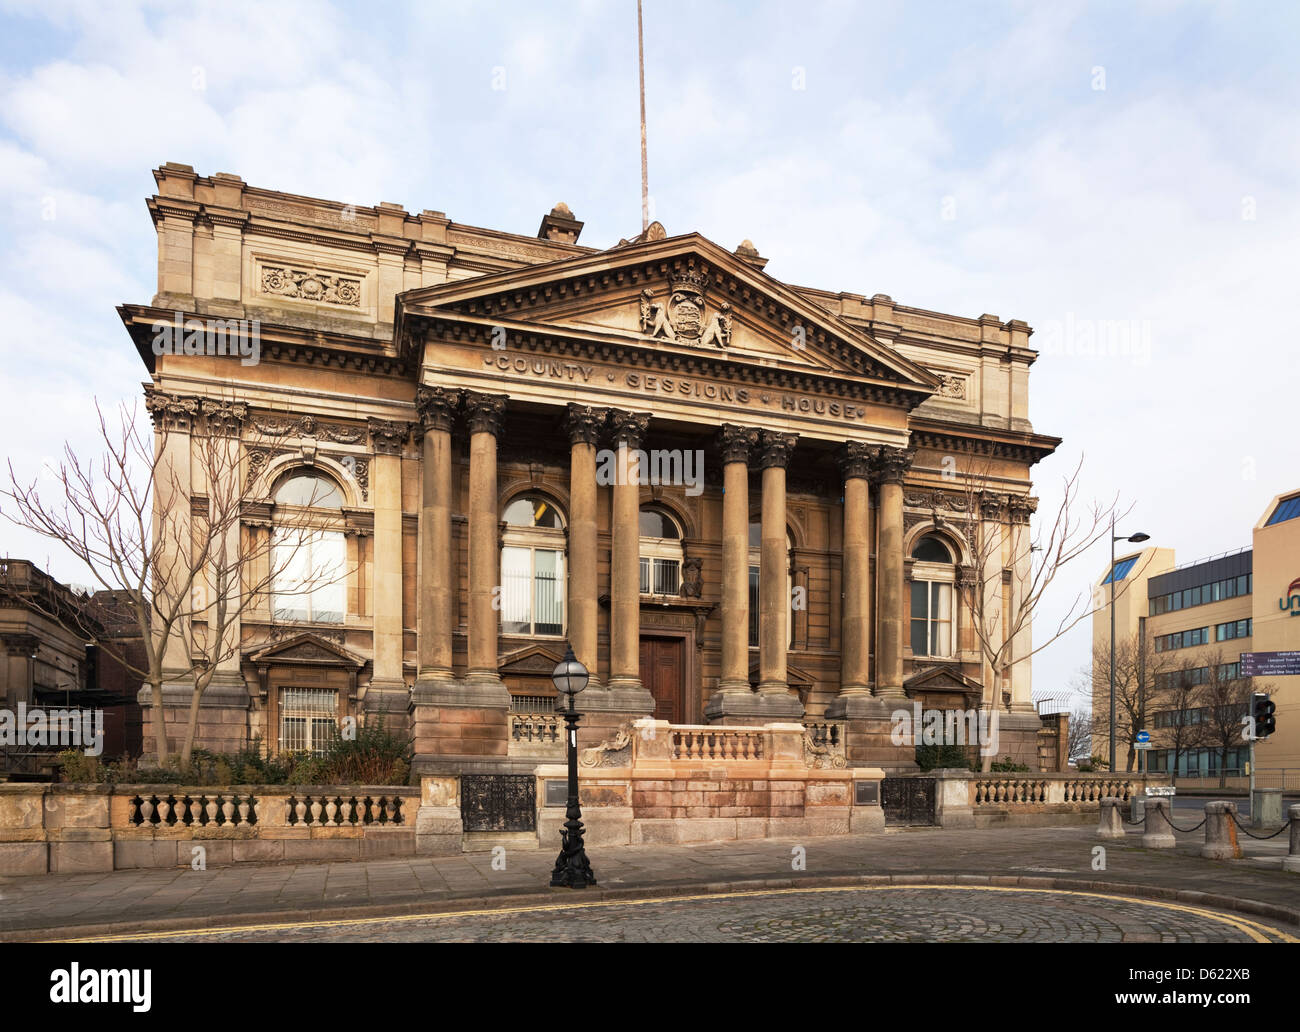 The County Sessions Courthouse built between 1882 and 1884, William Brown Street, Liverpool, Merseyside, England - Stock Image